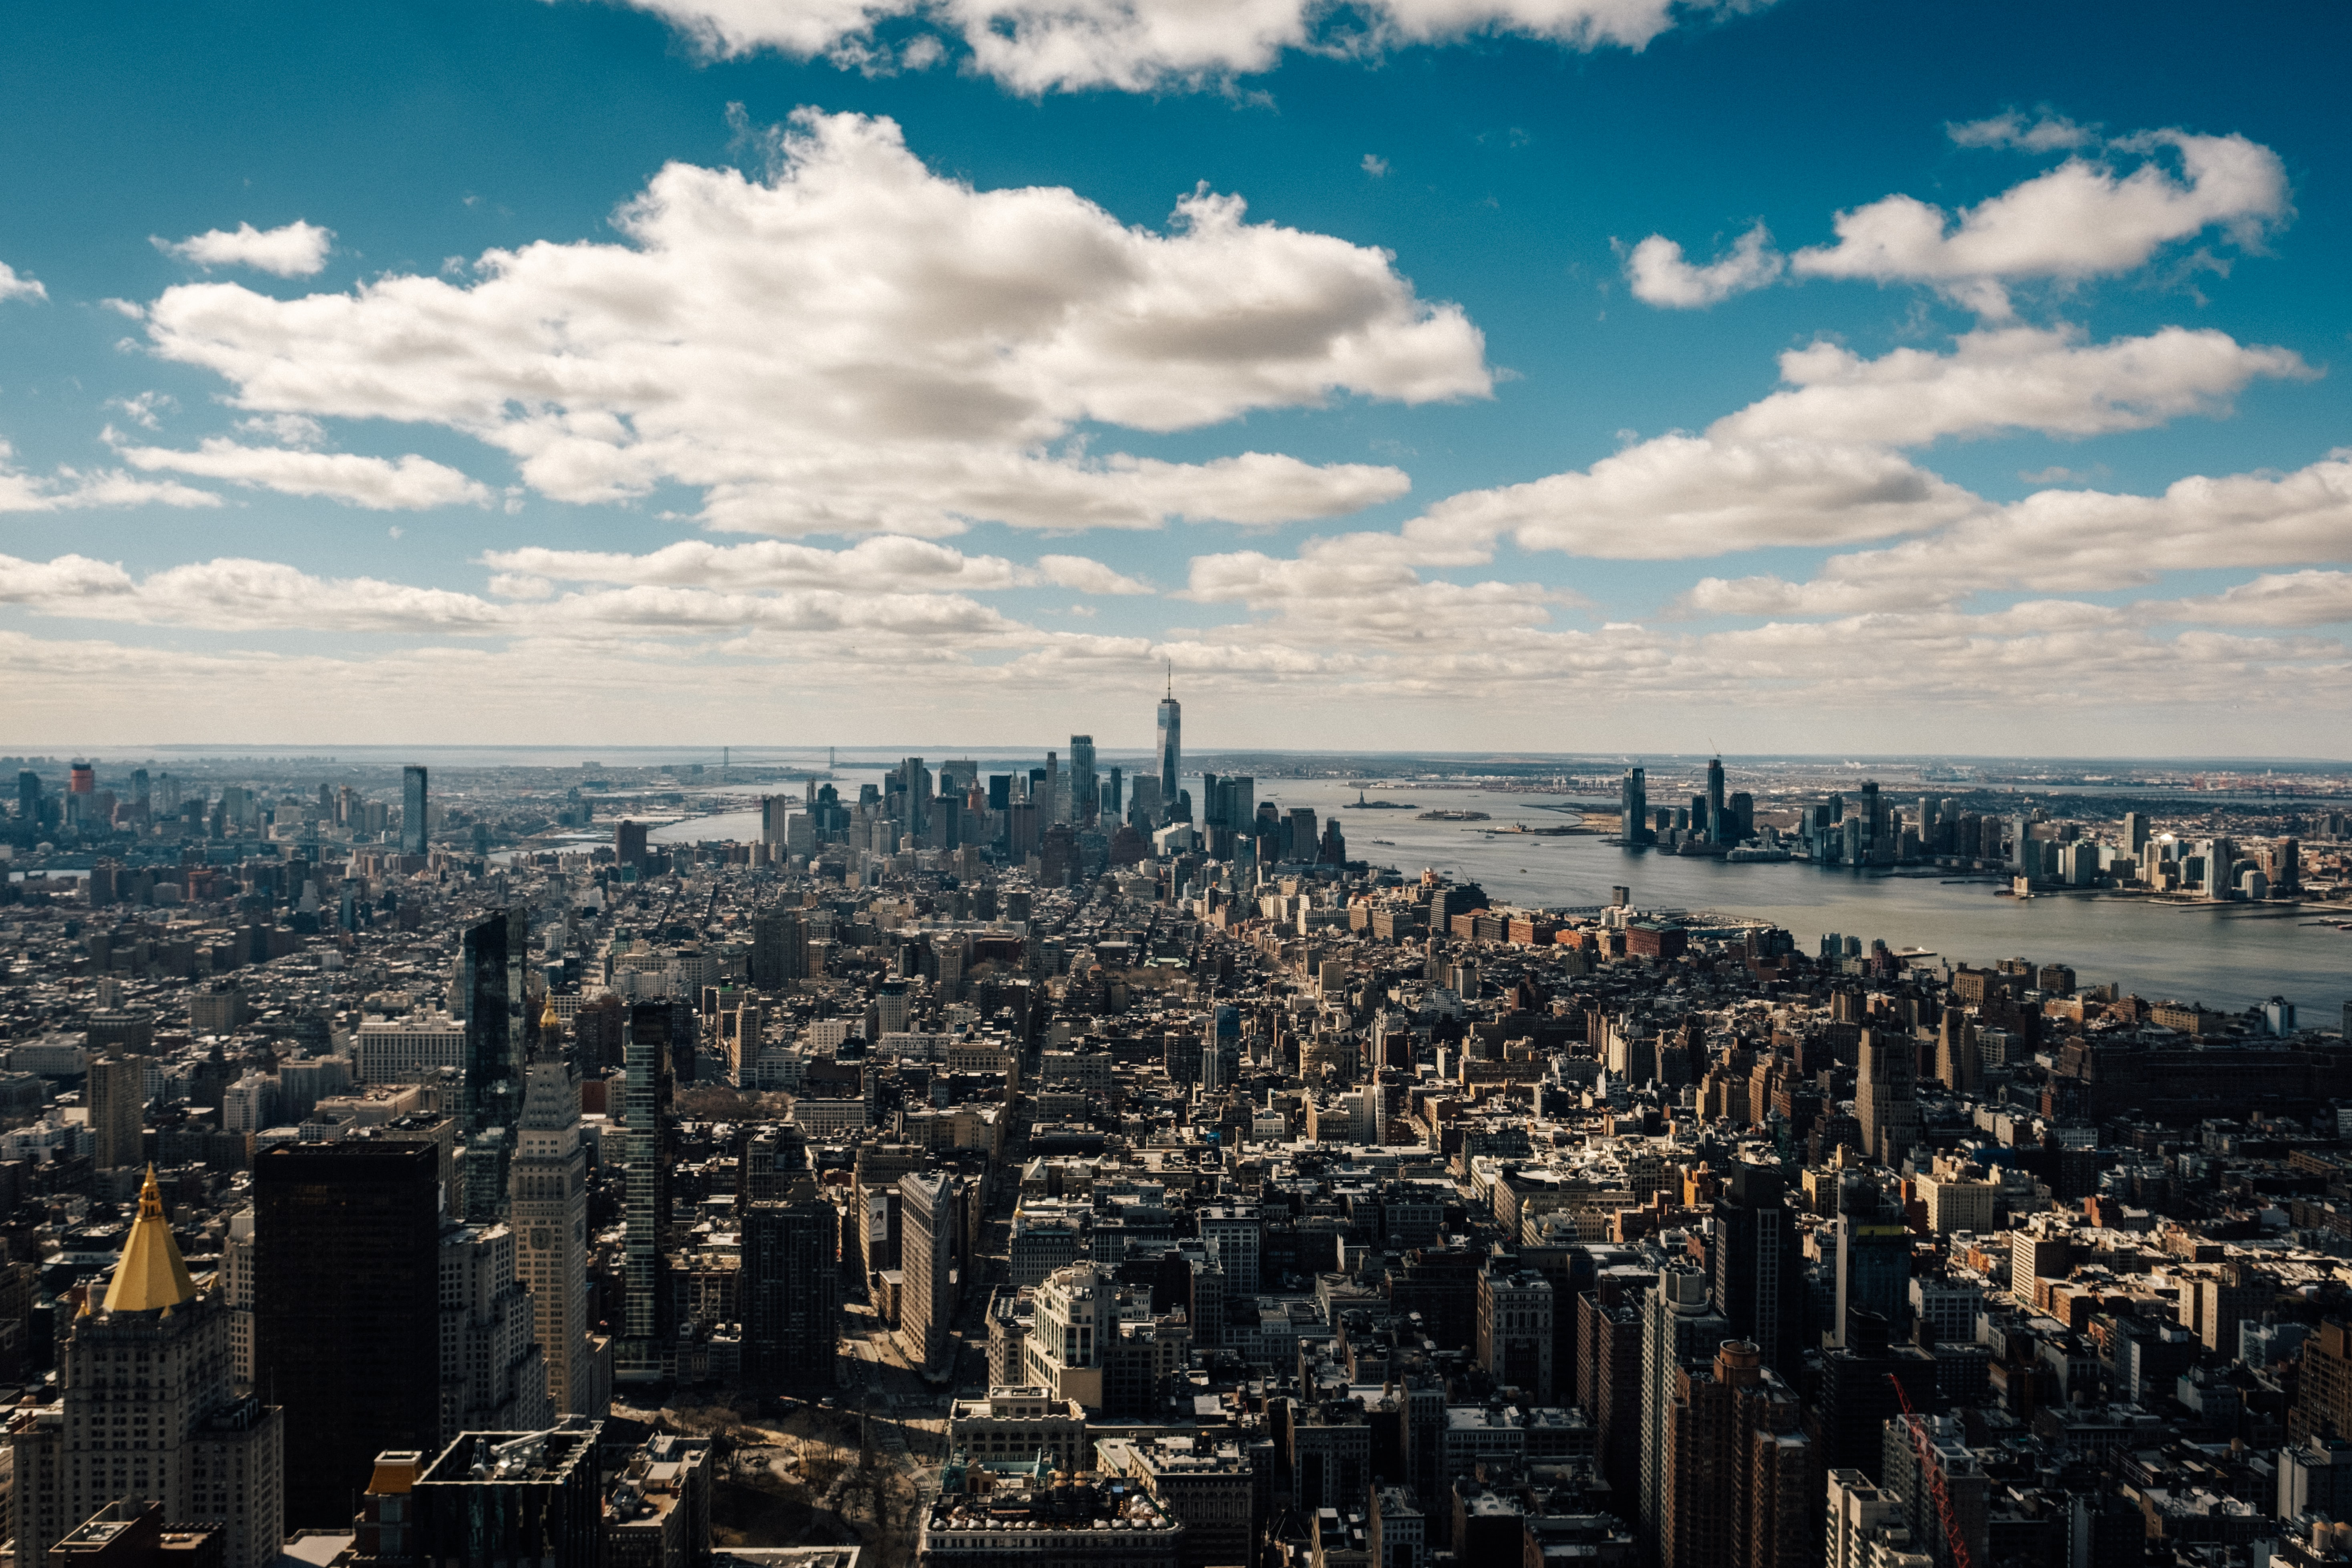 New York City under cloudy sky at daytime